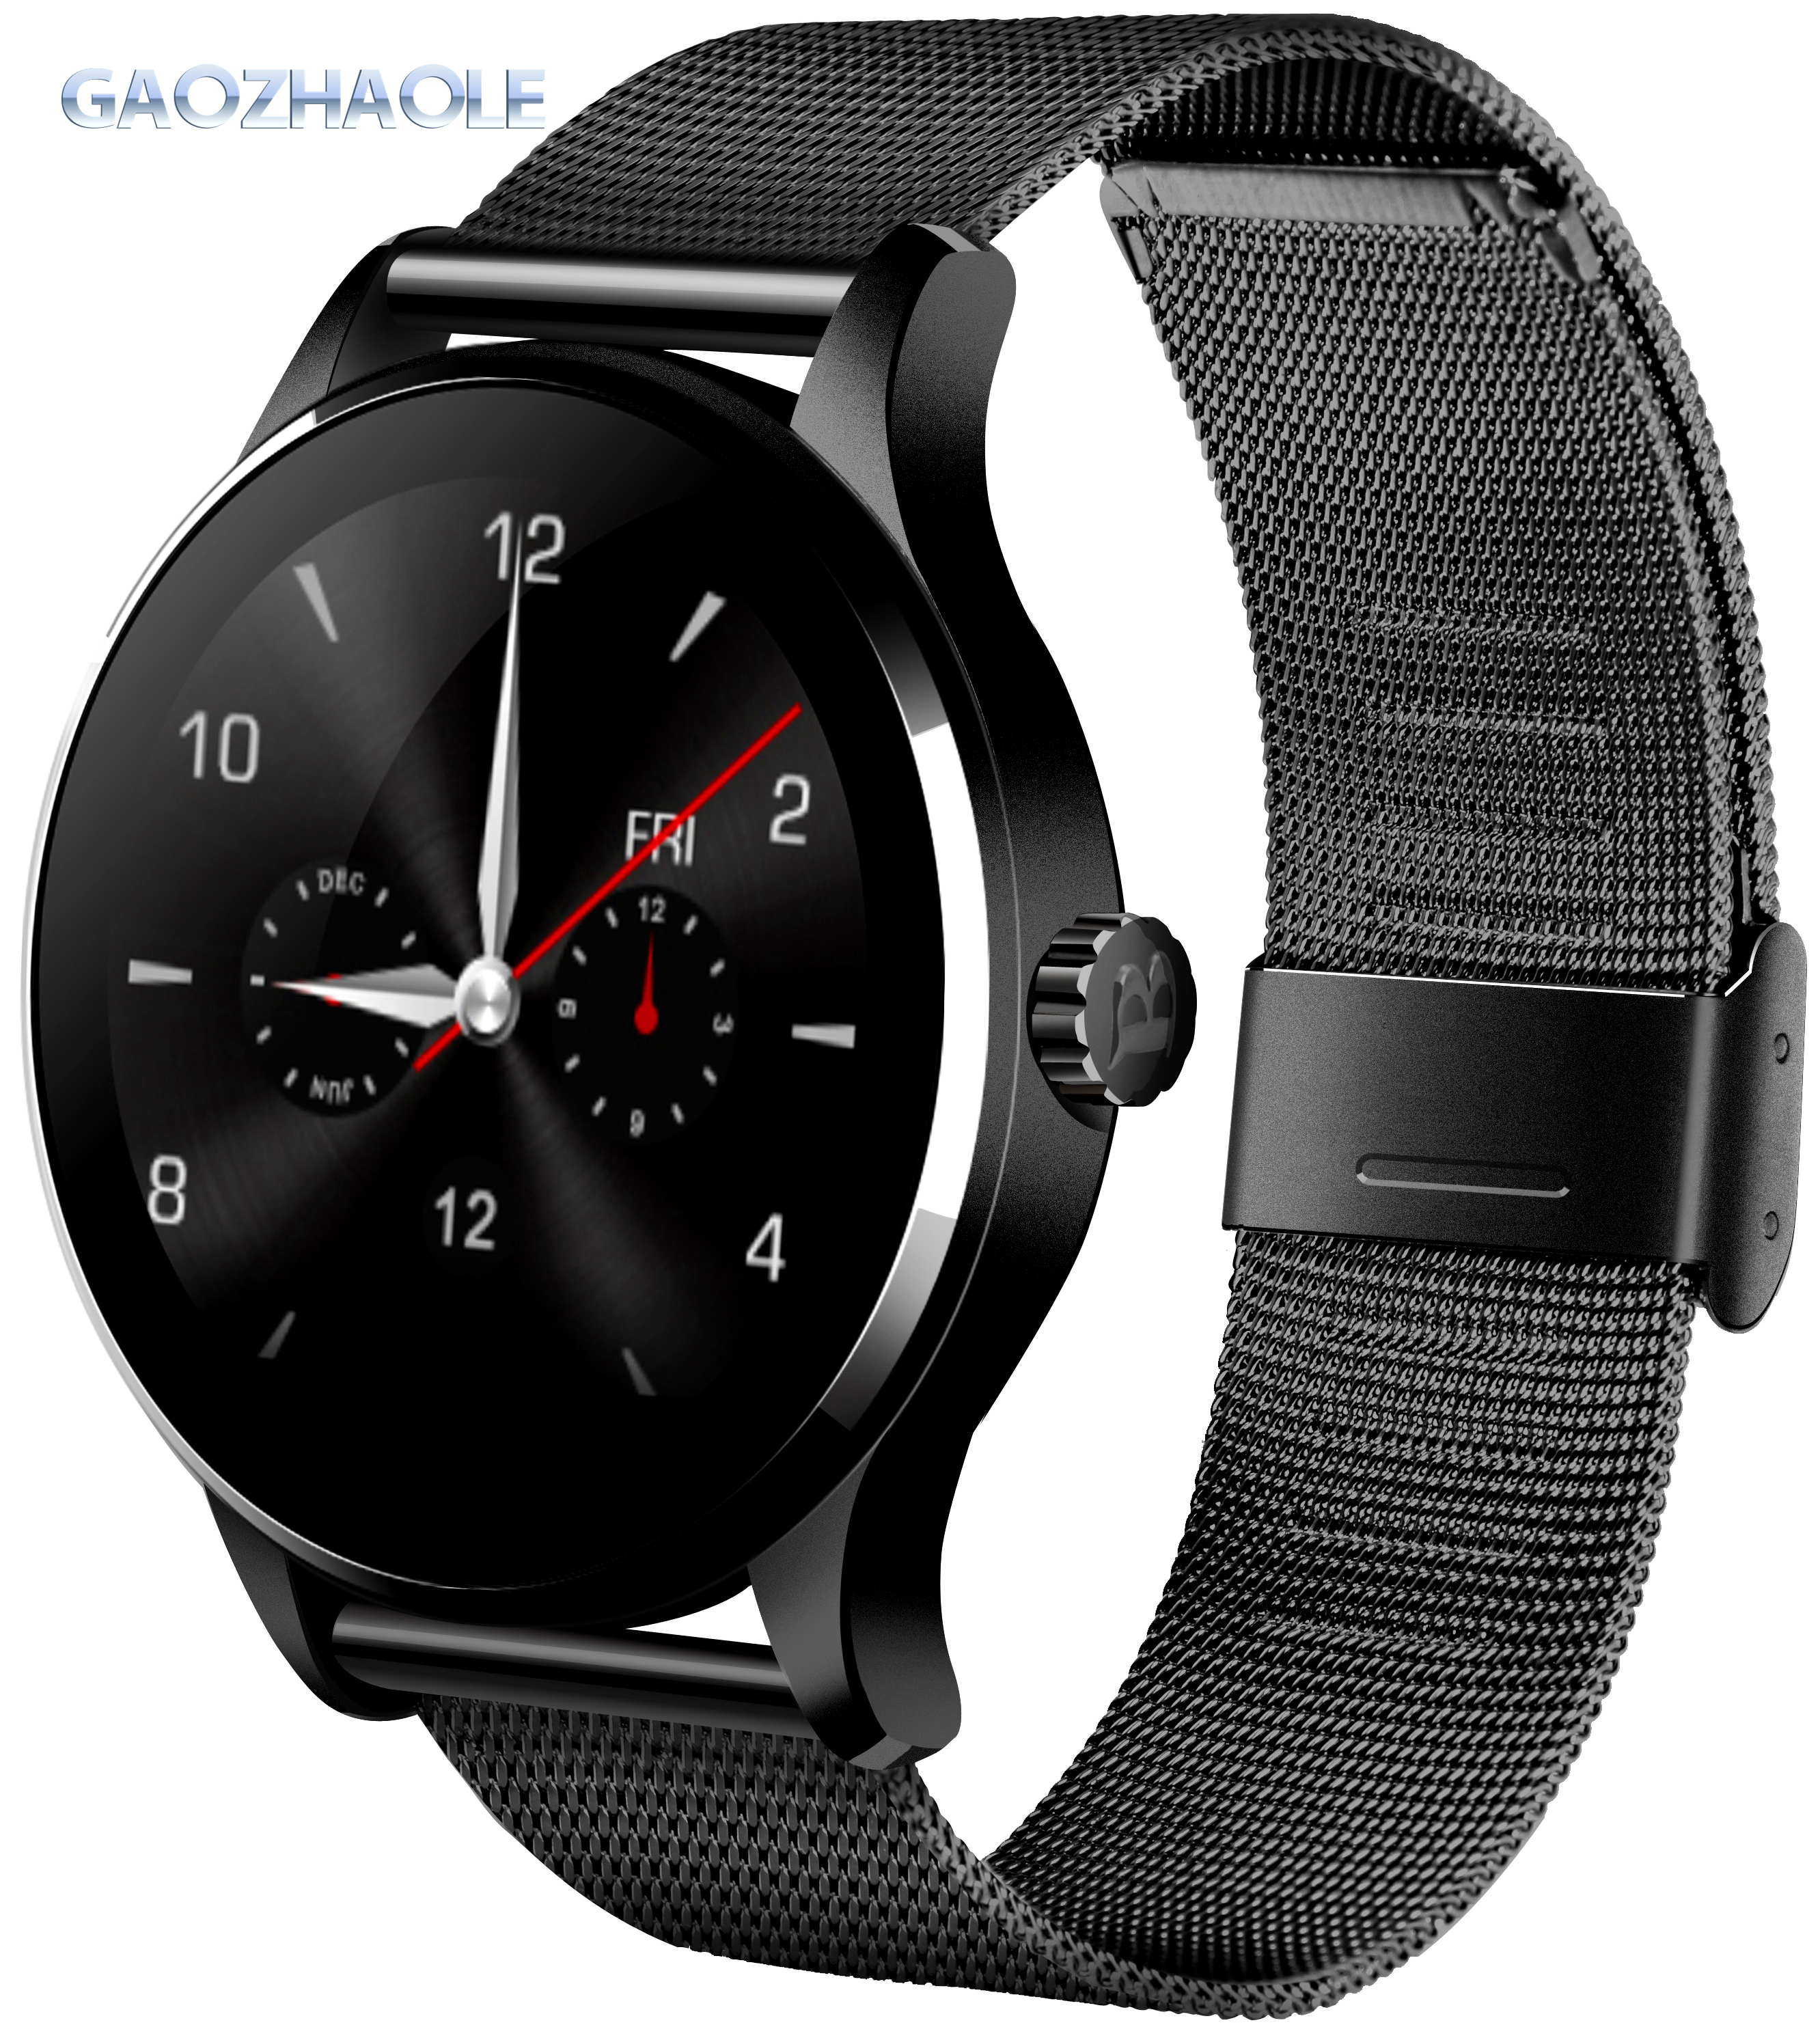 2019 hot sell round screen smart watch K88h for iphone and Android ip65 waterproof heart rate monitor k88h sport watch